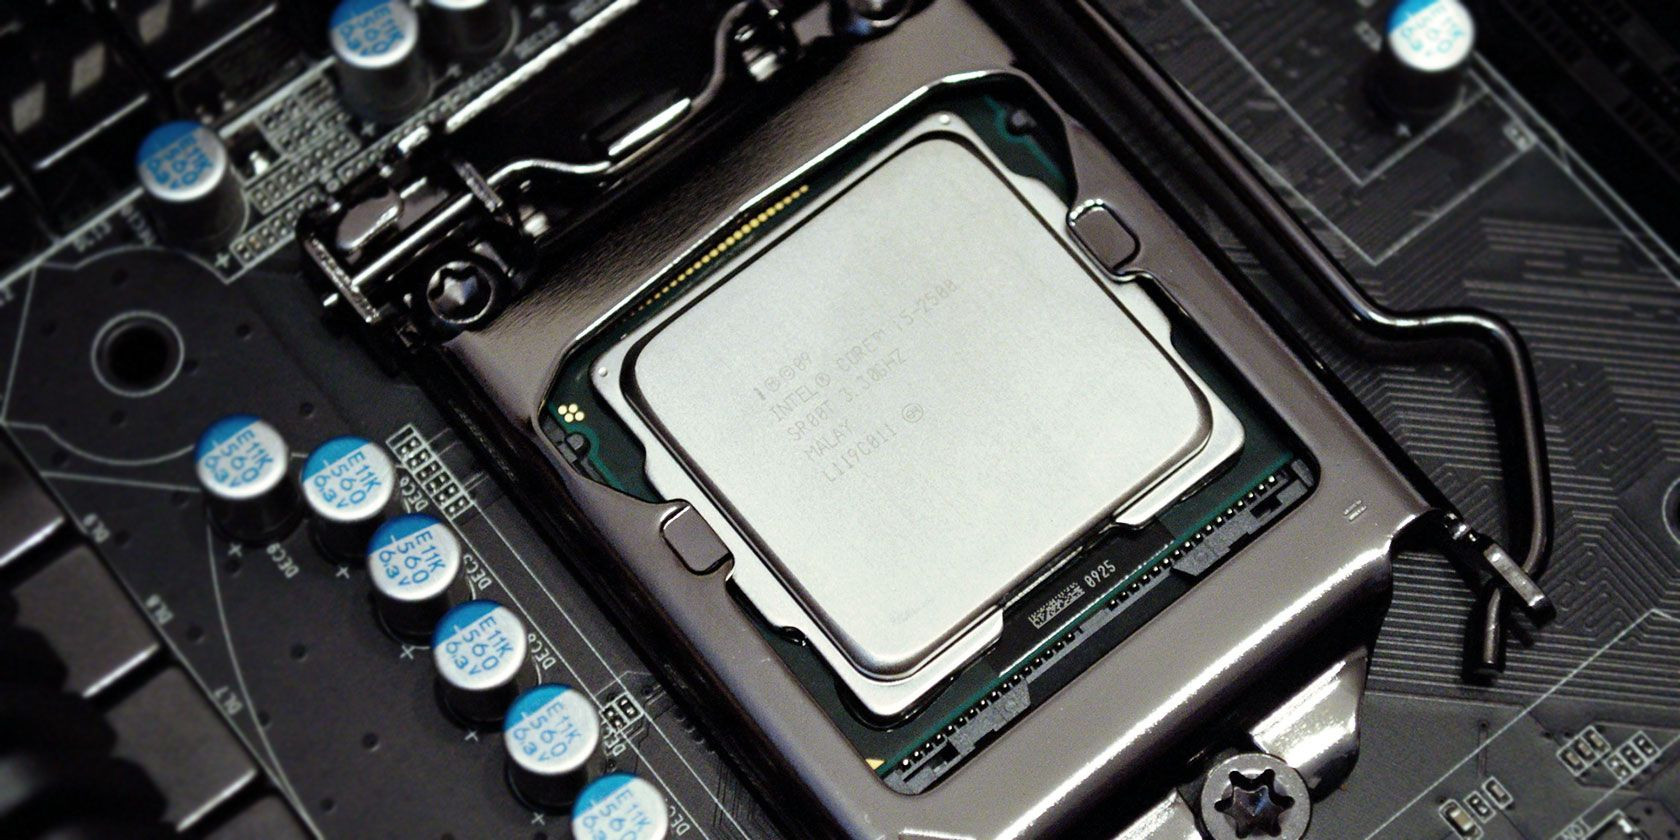 What Is an APU? The Accelerated Processing Unit, Explained